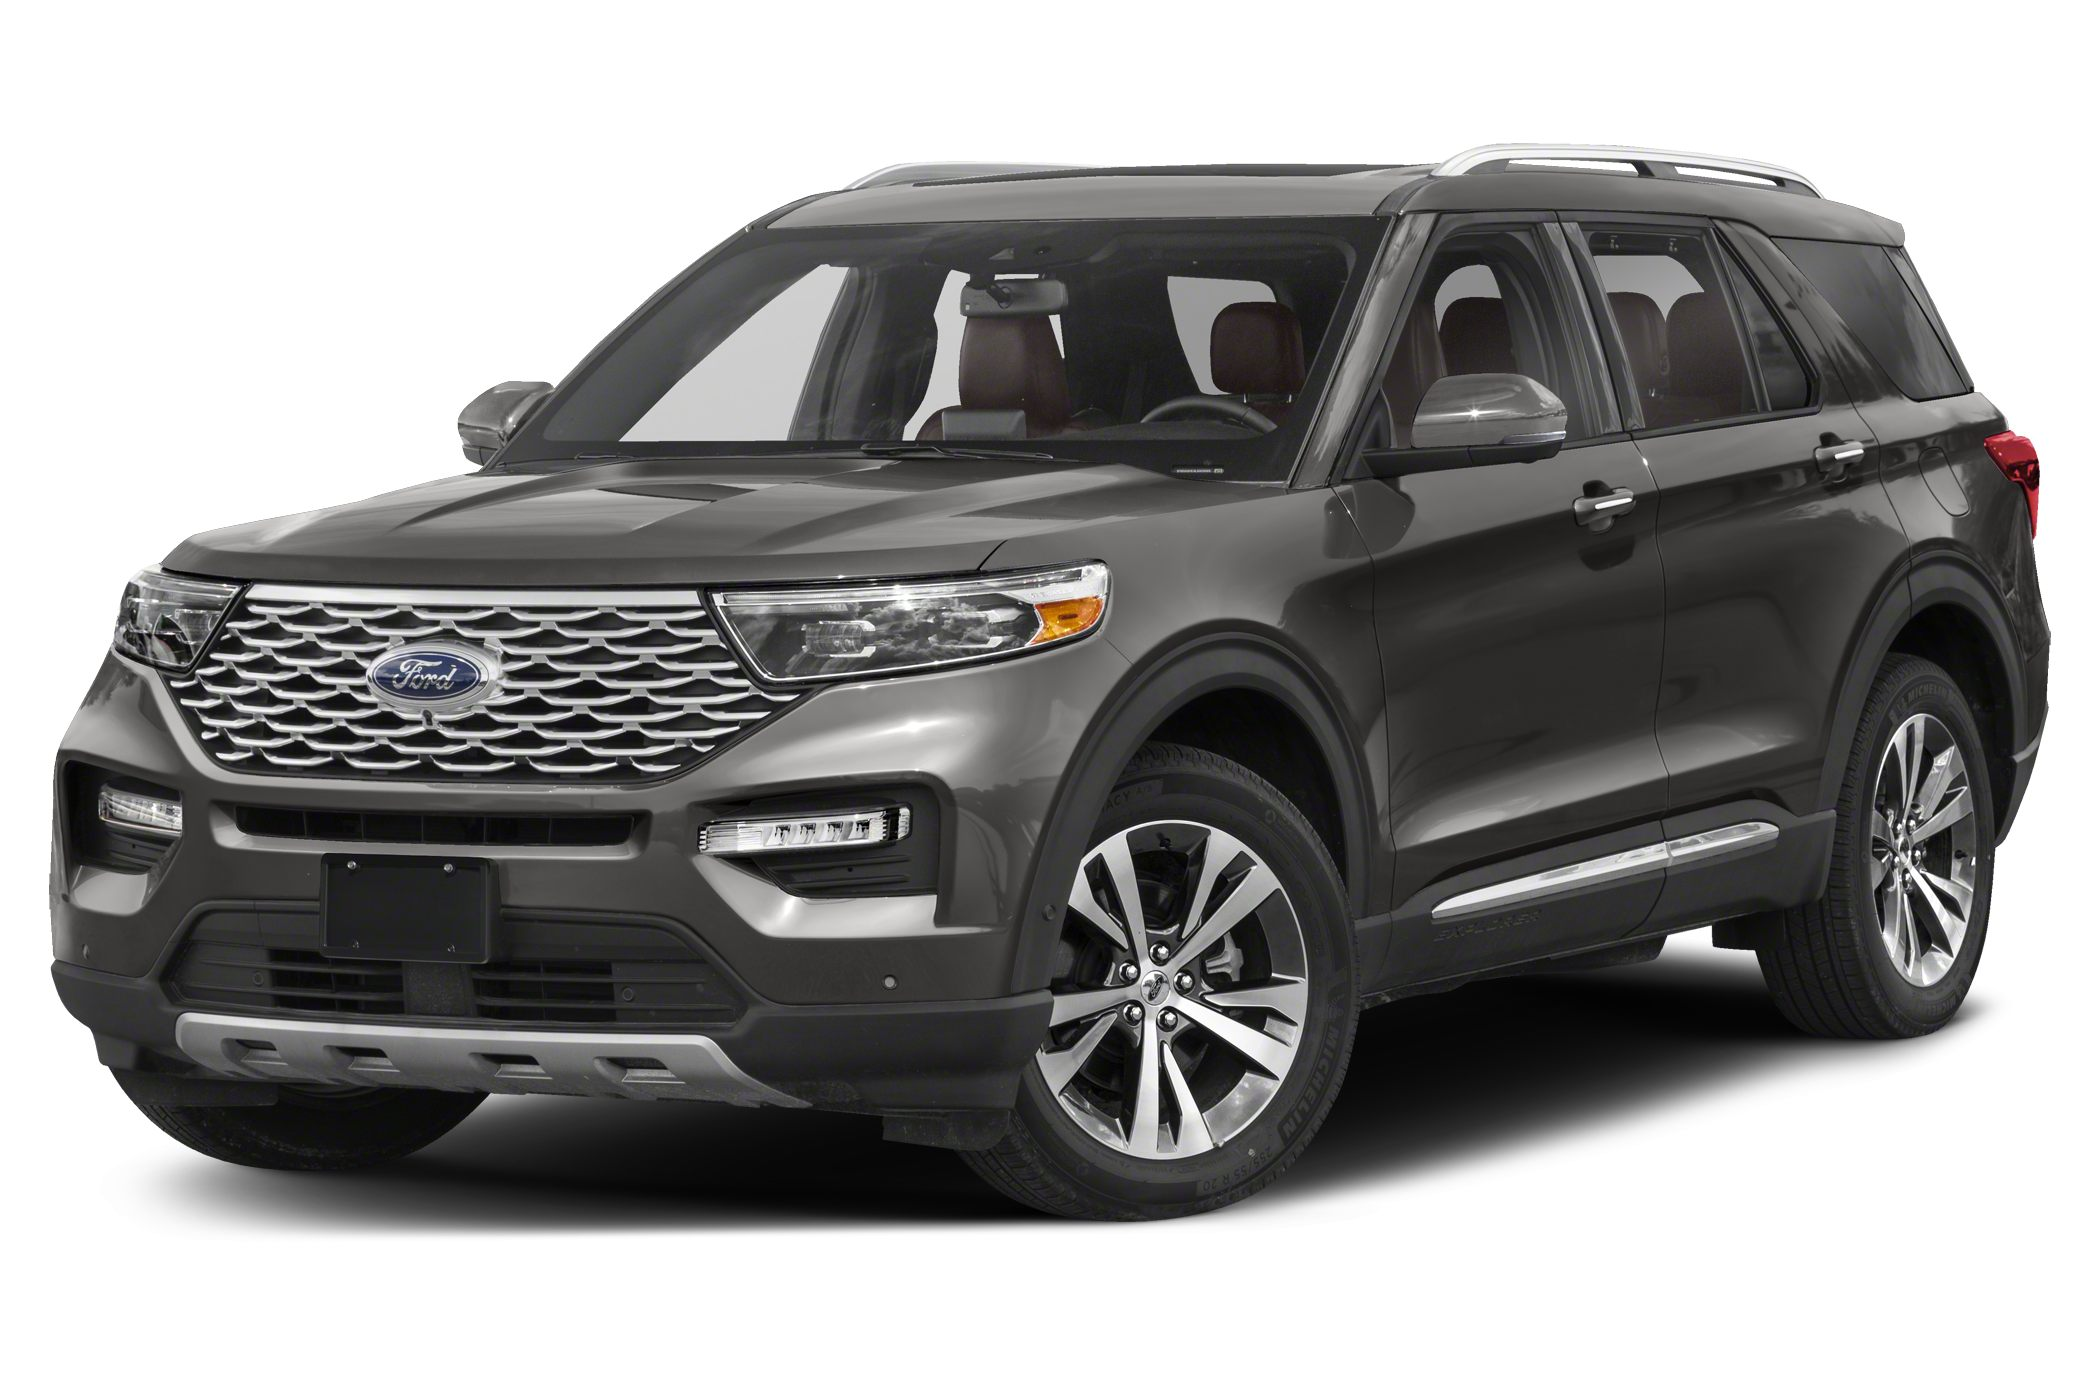 2020 Ford Explorer's seats are smaller but apparently just as comfortable